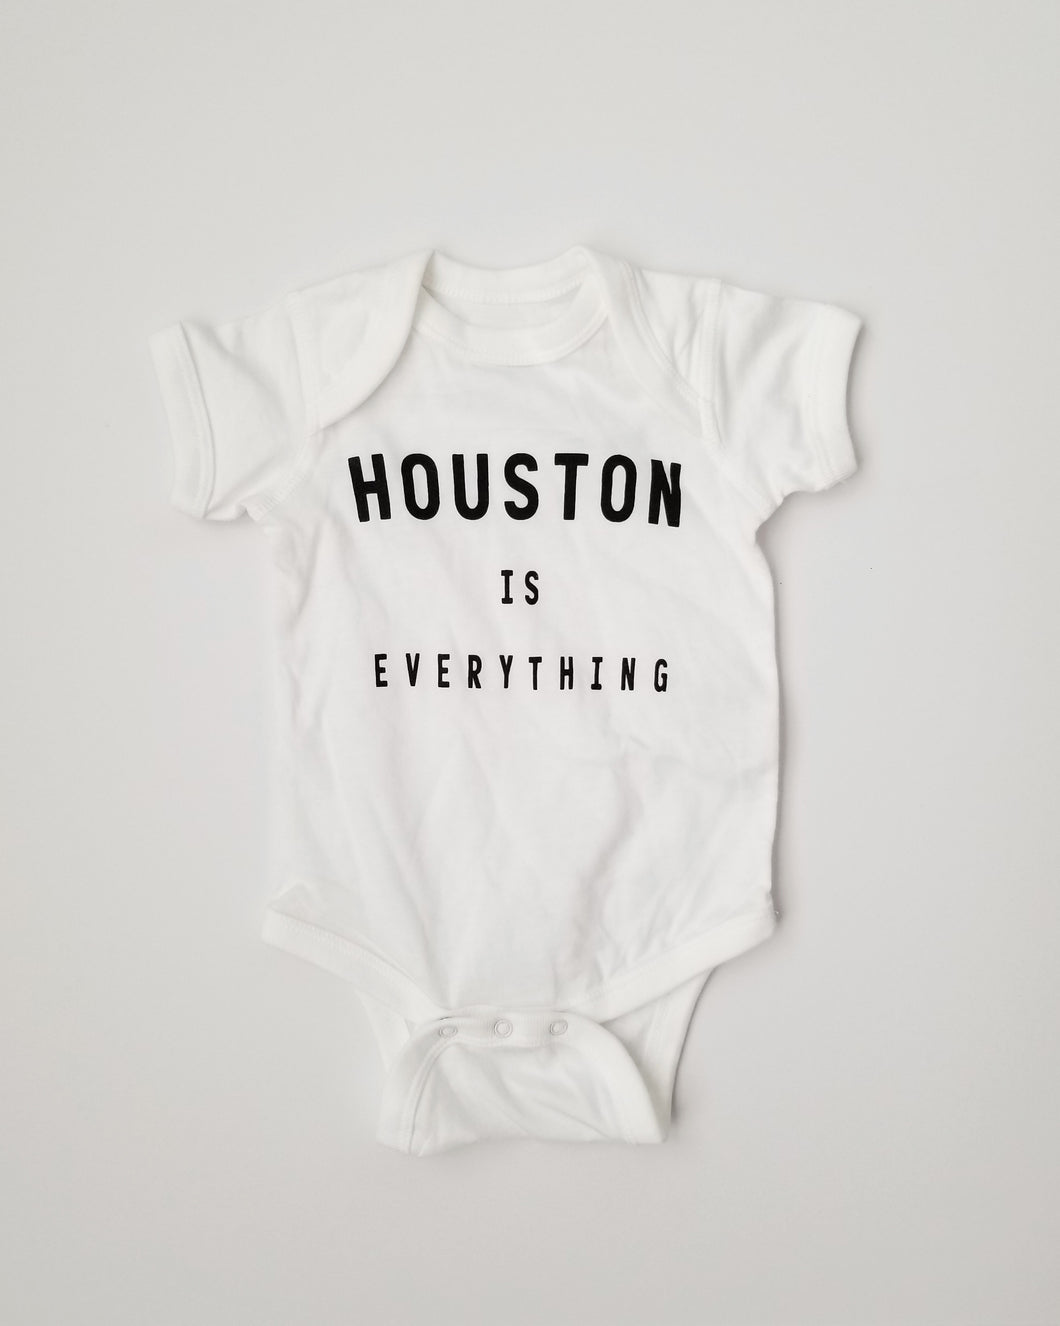 The Houston is Everything Onesie (White/Black)